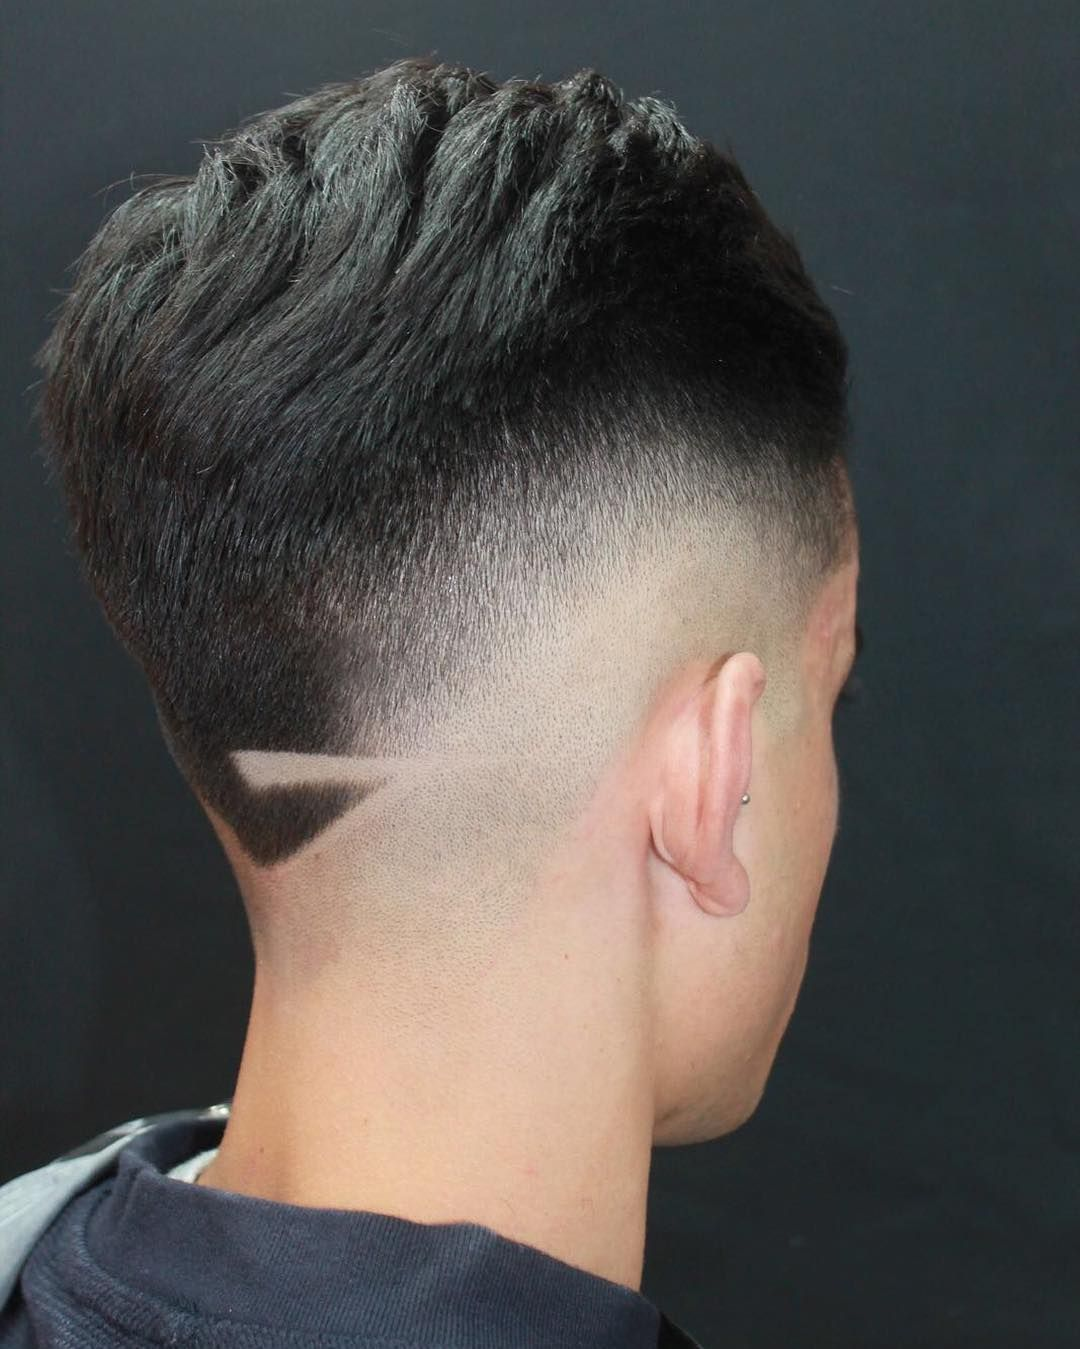 Haircut styles short on sides long on top menus hair haircuts fade haircuts short medium long buzzed